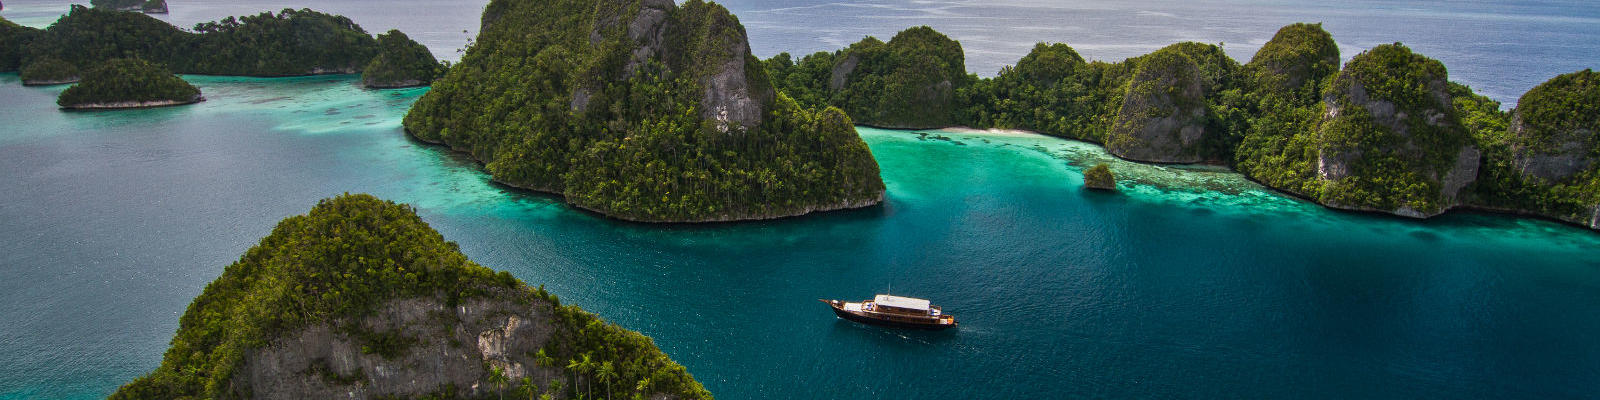 sailing boat in papua new guinea waters with islands